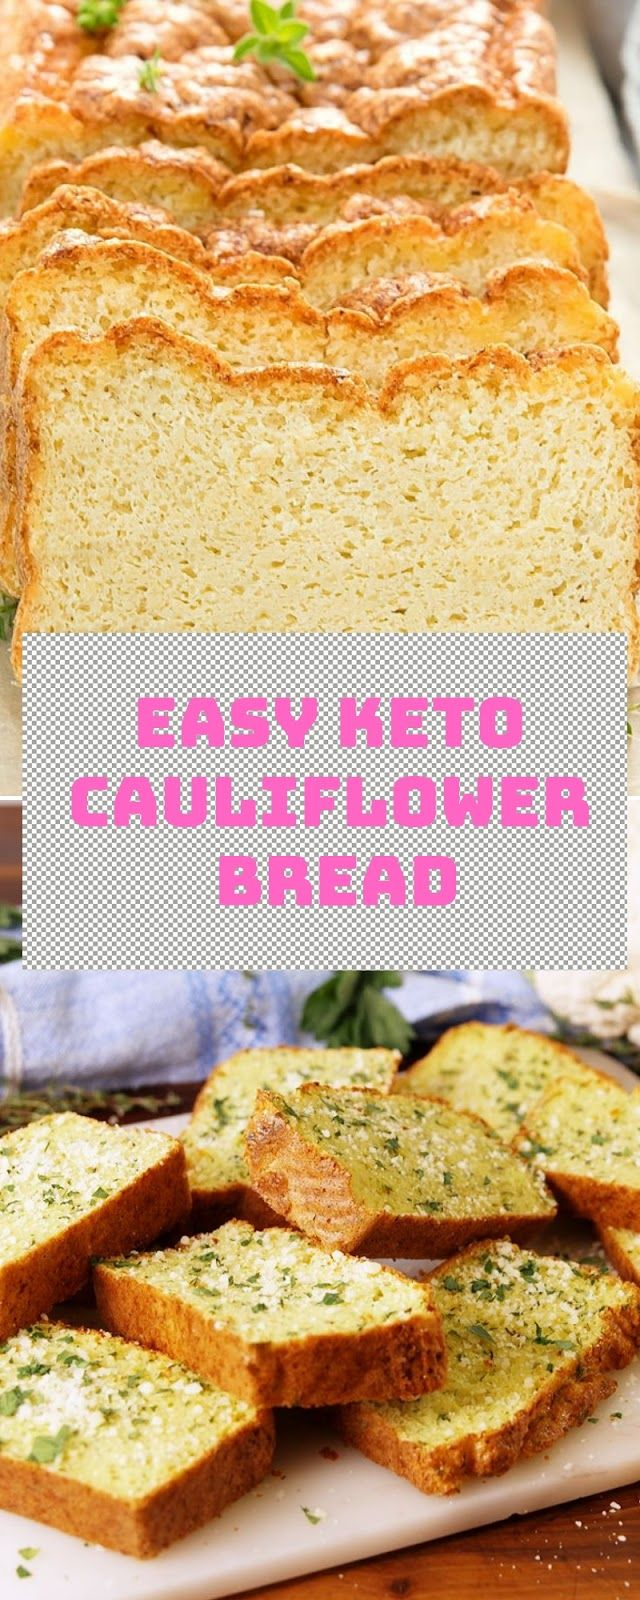 Pin By Calisse Shania On All Recipes In 2019 Cauliflower Bread